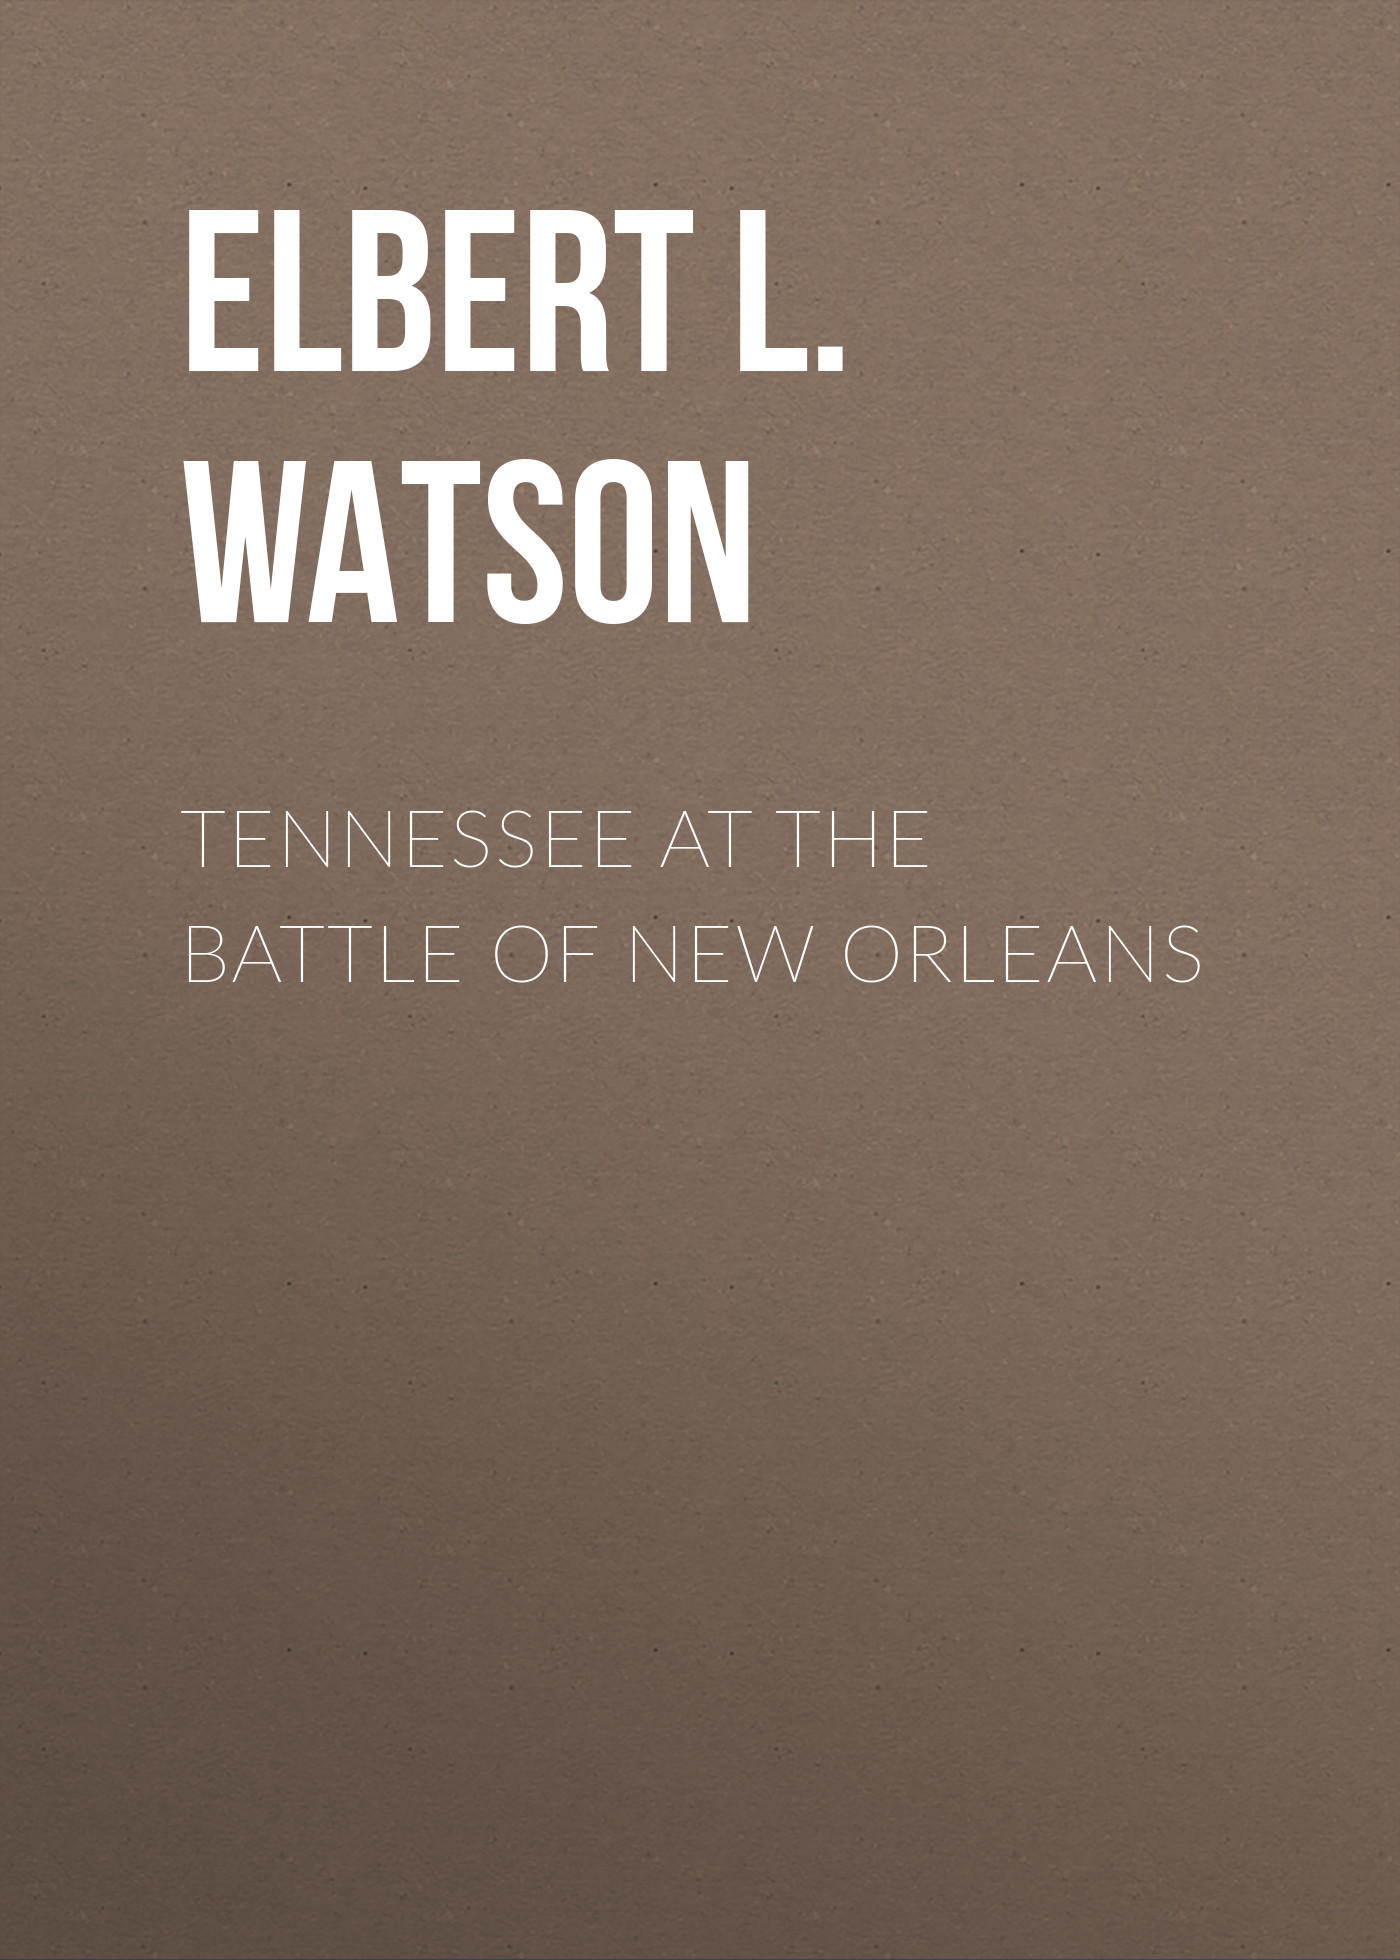 Elbert L. Watson Tennessee at the Battle of New Orleans